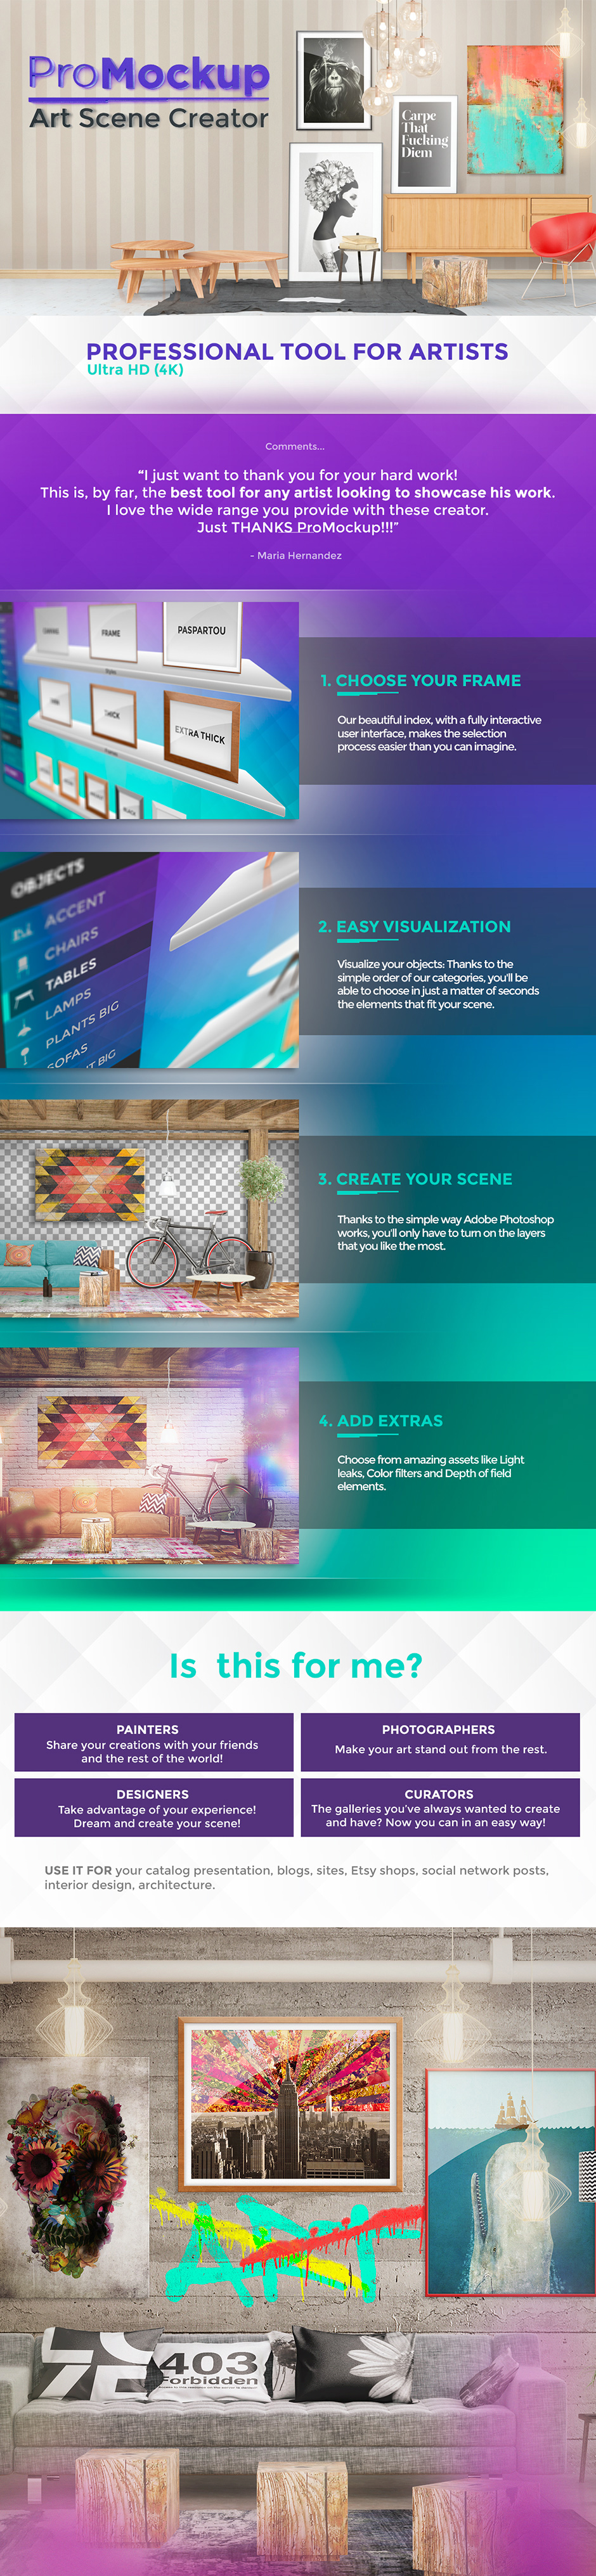 Pro Mockup psd for artists - Ultra HD (4K)